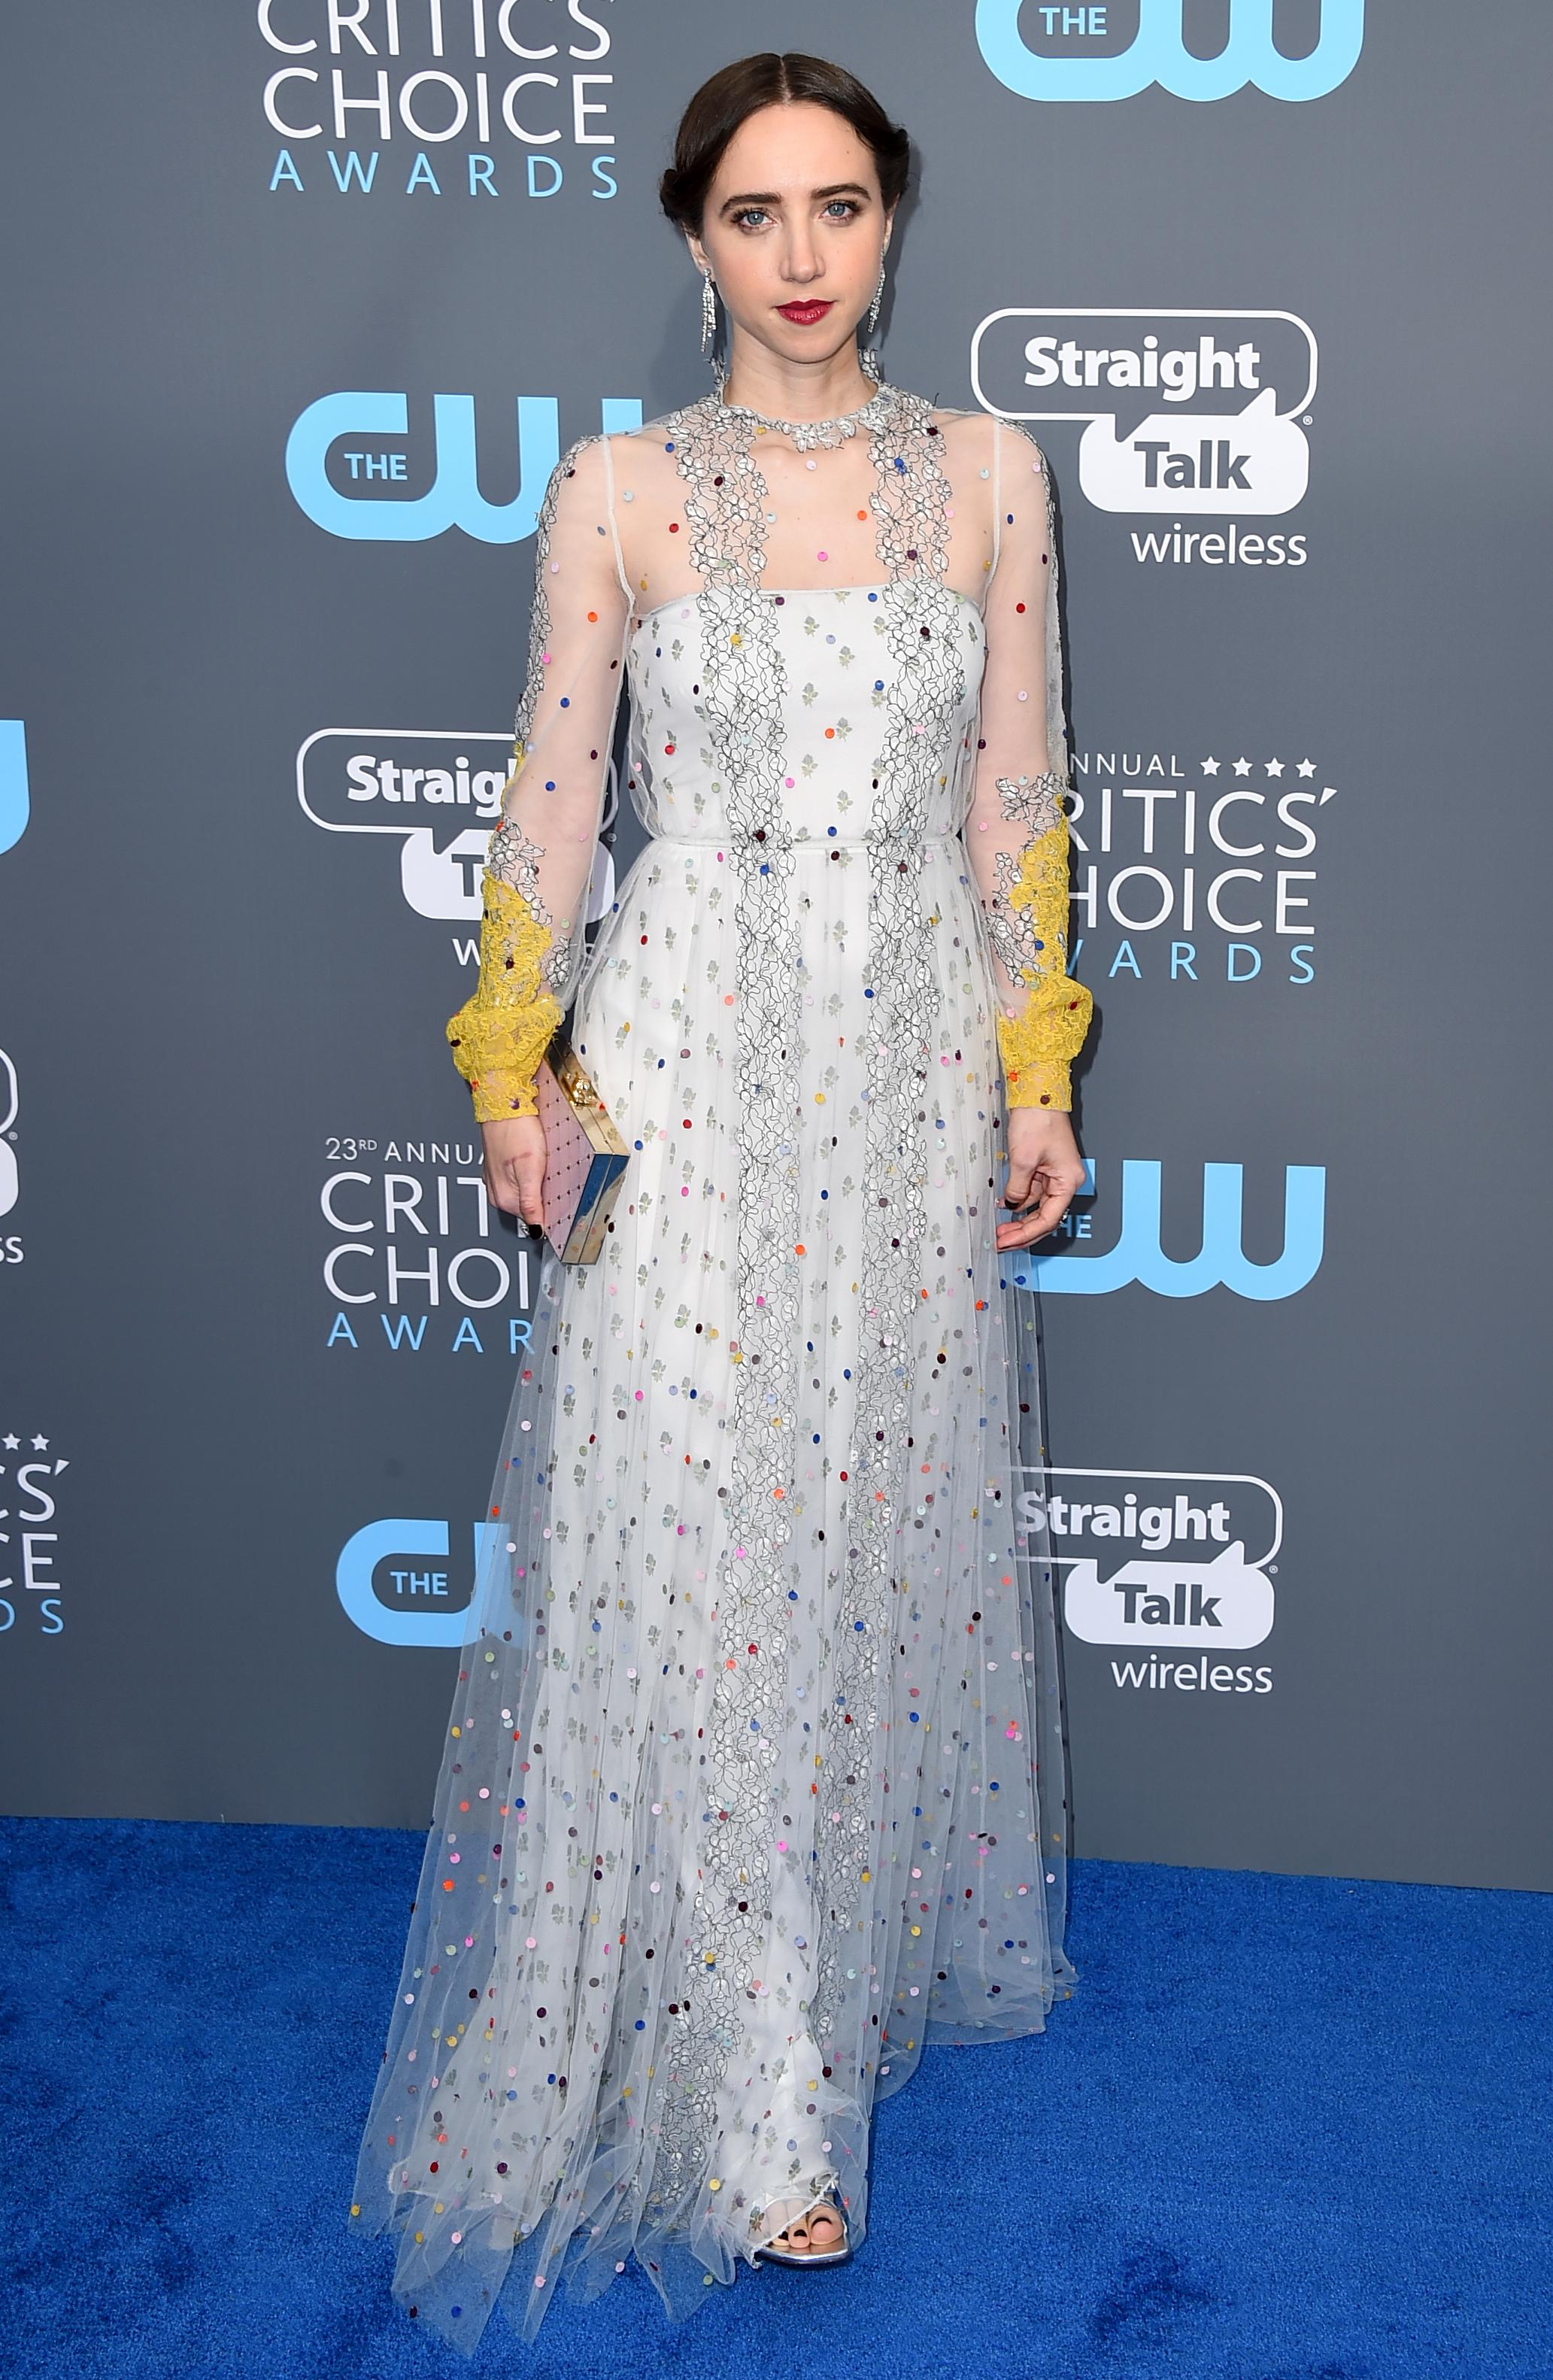 Zoe Kazan arrives at the 23rd annual Critics' Choice Awards at the Barker Hangar on Thursday, Jan. 11, 2018, in Santa Monica, Calif. (Photo by Jordan Strauss/Invision/AP)